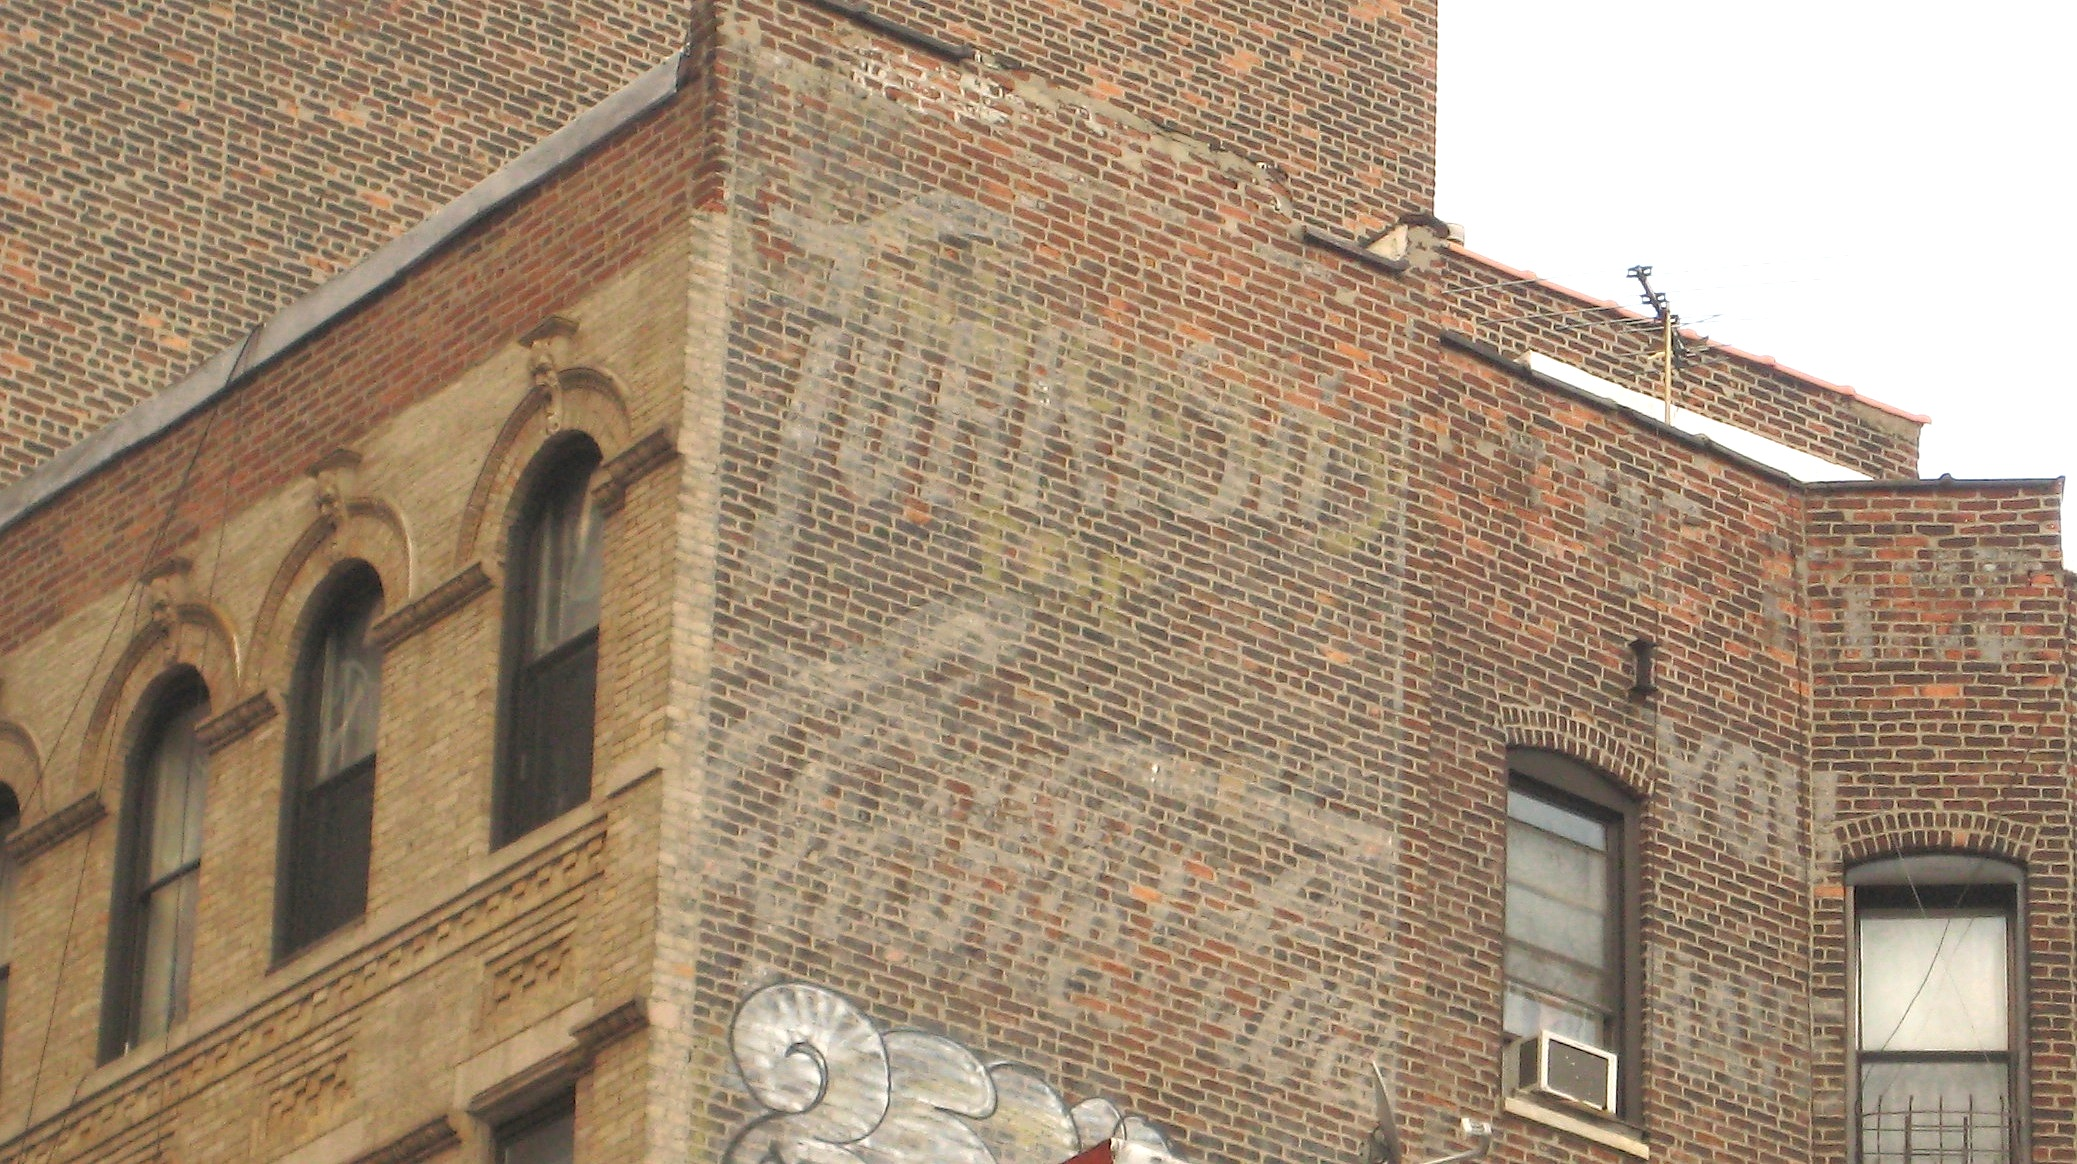 Vintage Ads Fading Away On Brick Buildings